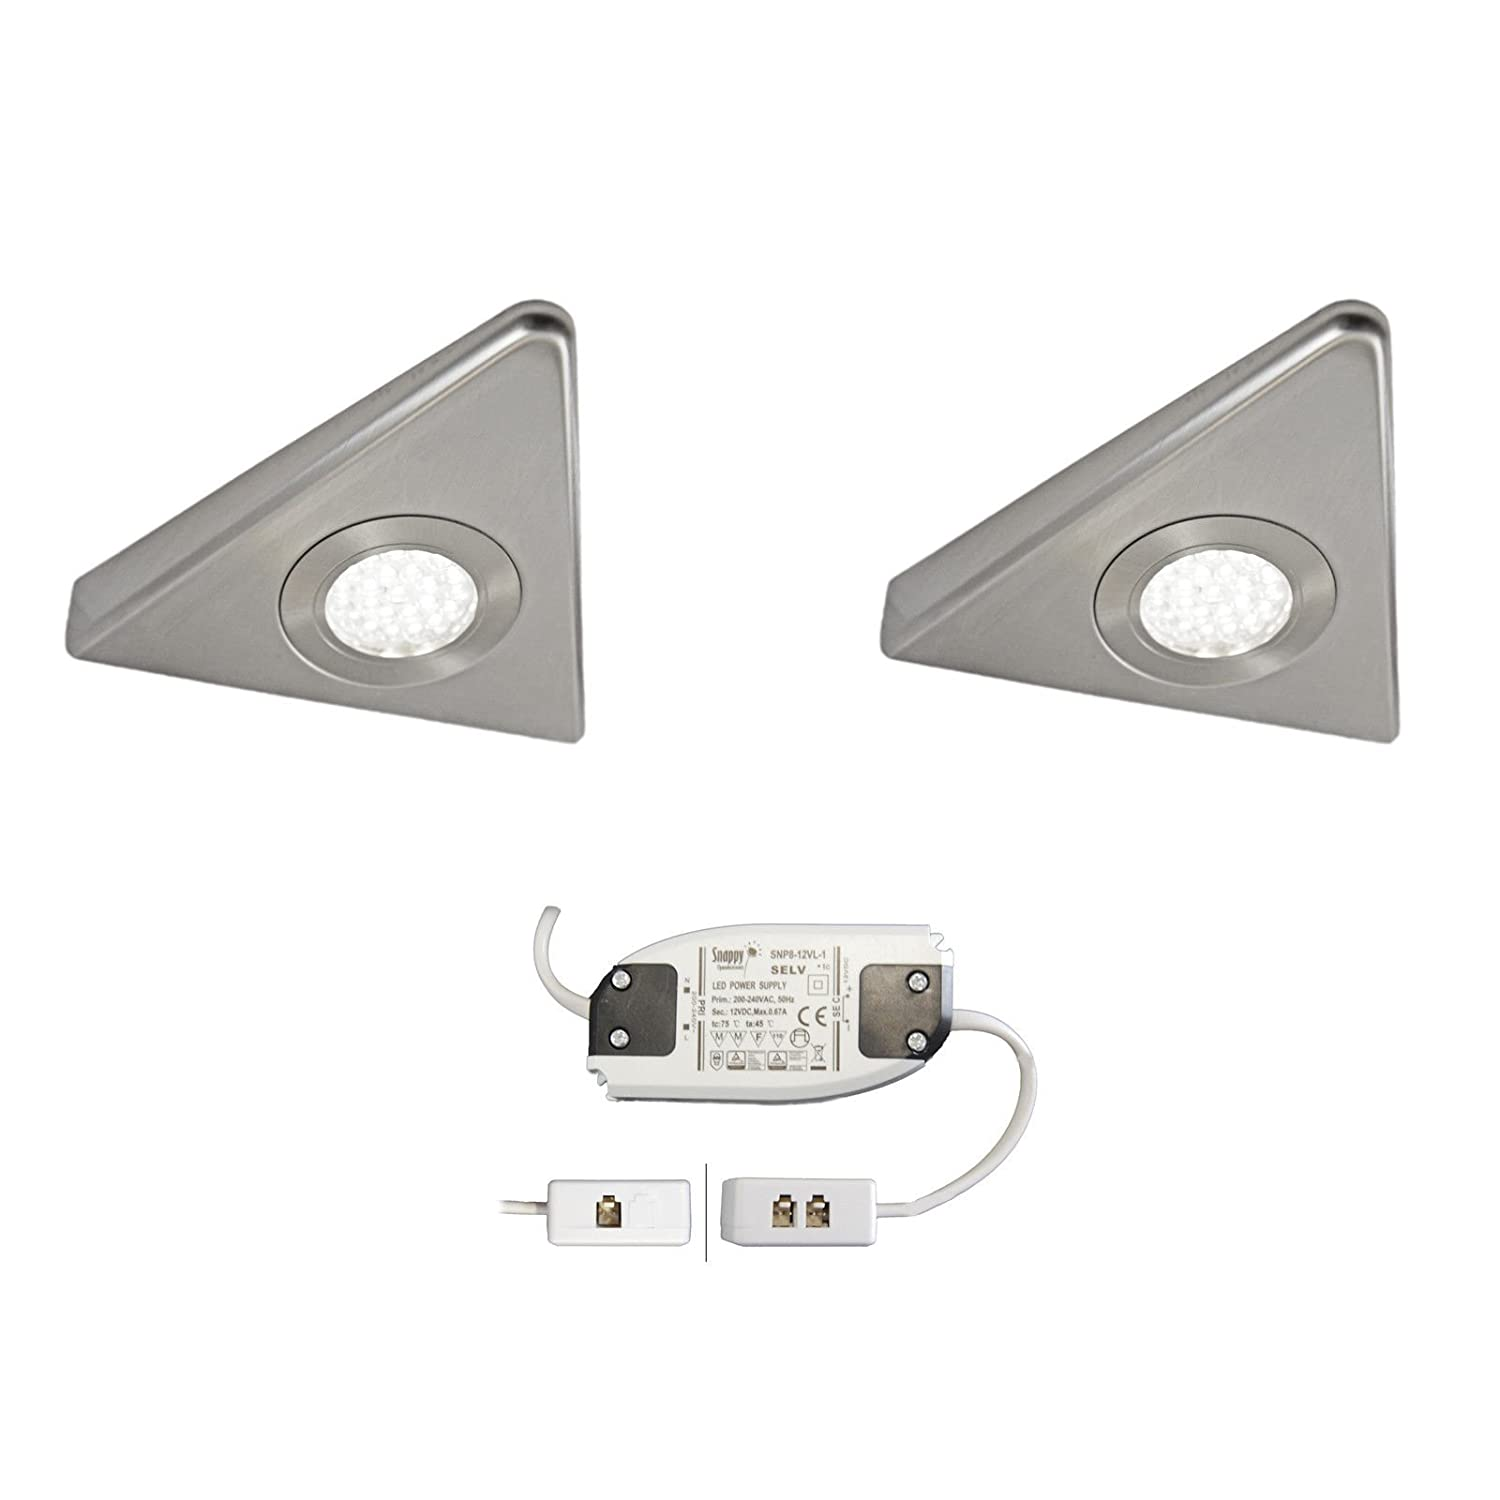 4x KITCHEN UNDER CABINET CUPBOARD LED SLIM TRIANGLE LIGHT KIT STAINLESS FINISH COMO COOL WHITE